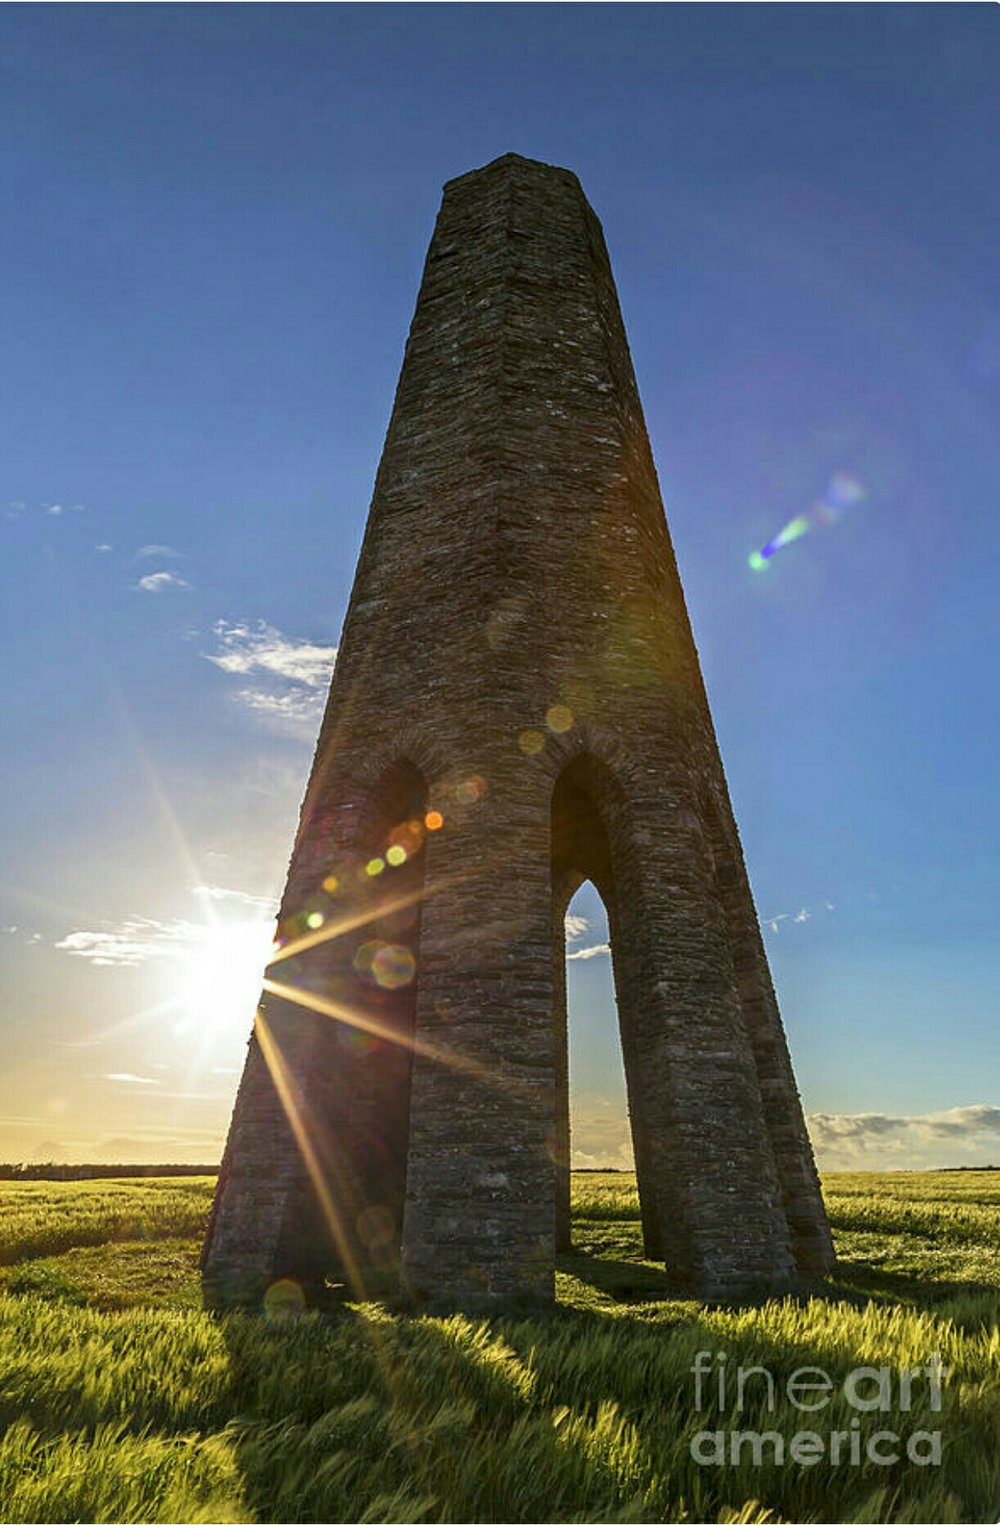 The daymark behind a strong sun